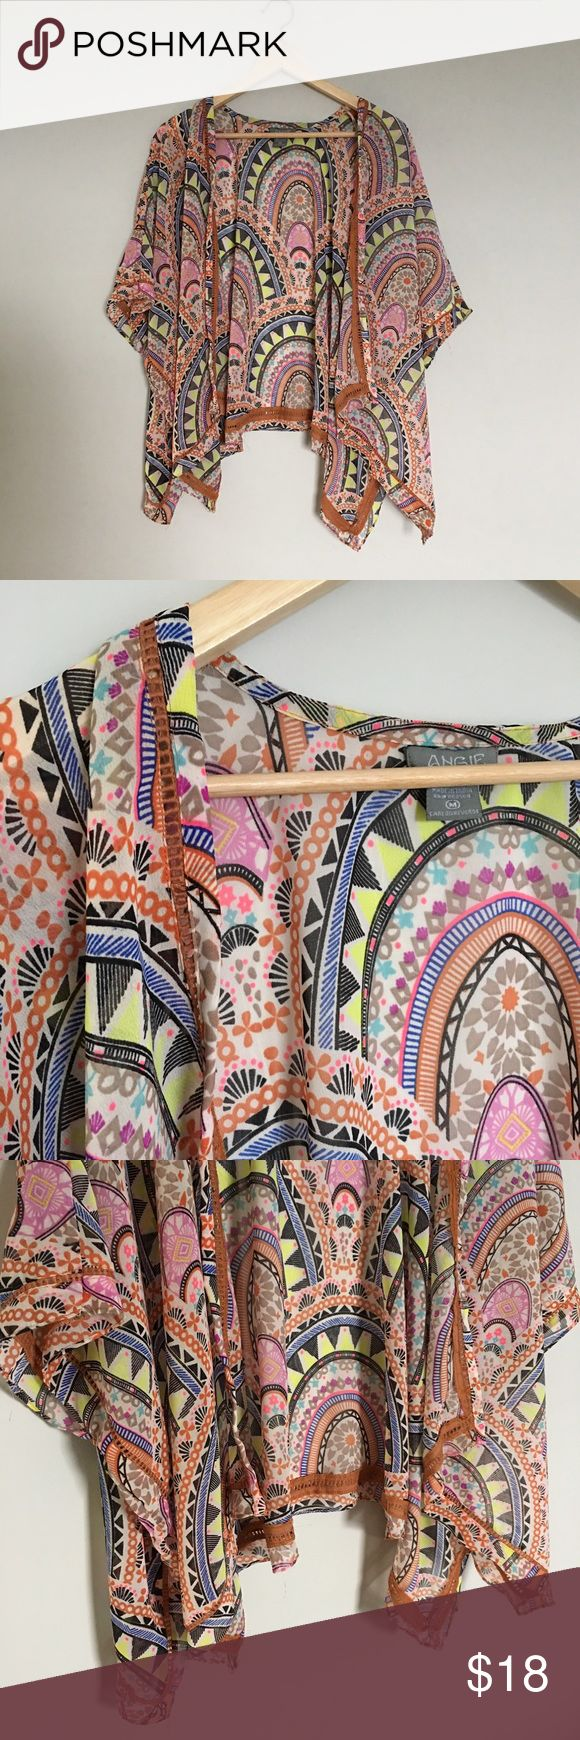 "Angie Sheer Boho Kimono Top Neon Geometric Print Open boho kimono top from Angie in a gorgeous neon geometric pattern against a cream background. Featuring rust cotton eyelet trim detail and a great drape. Appx 23"" long from top of shoulder and appx 39"" wide when laid flat. Angie Tops Blouses"